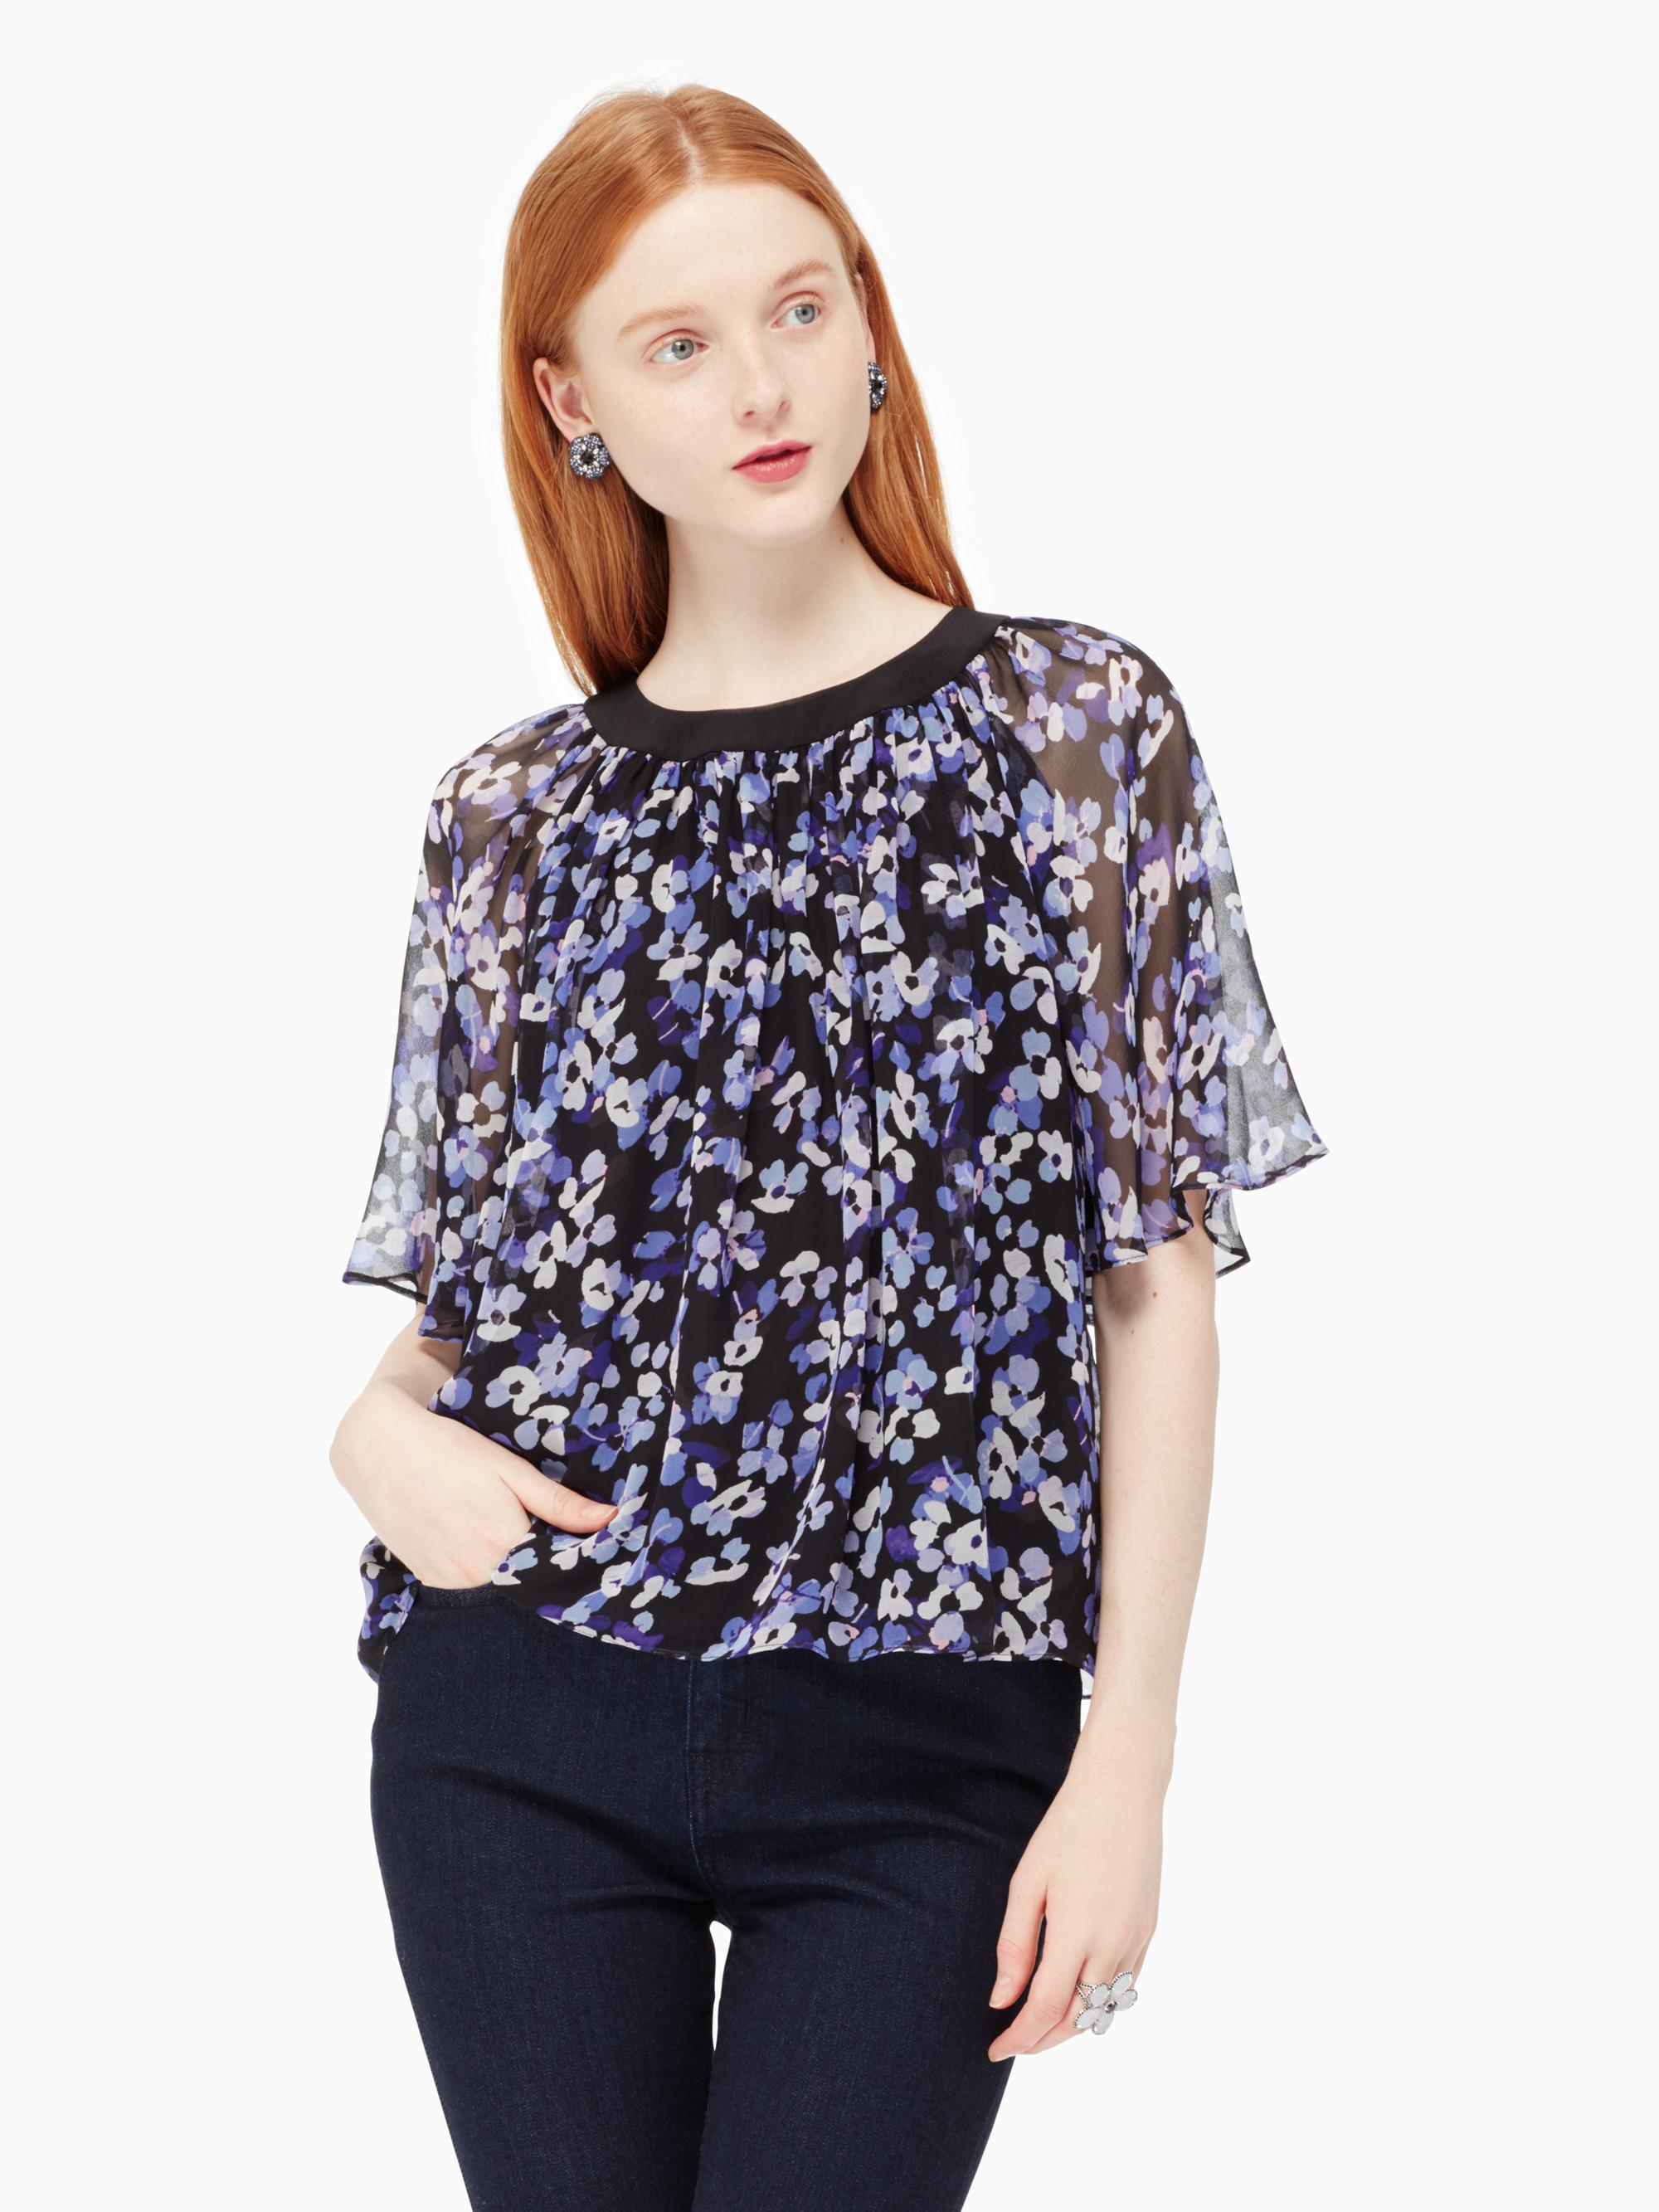 Lyst kate spade new york hydrangea chiffon top in black for Best dress shirts nyc